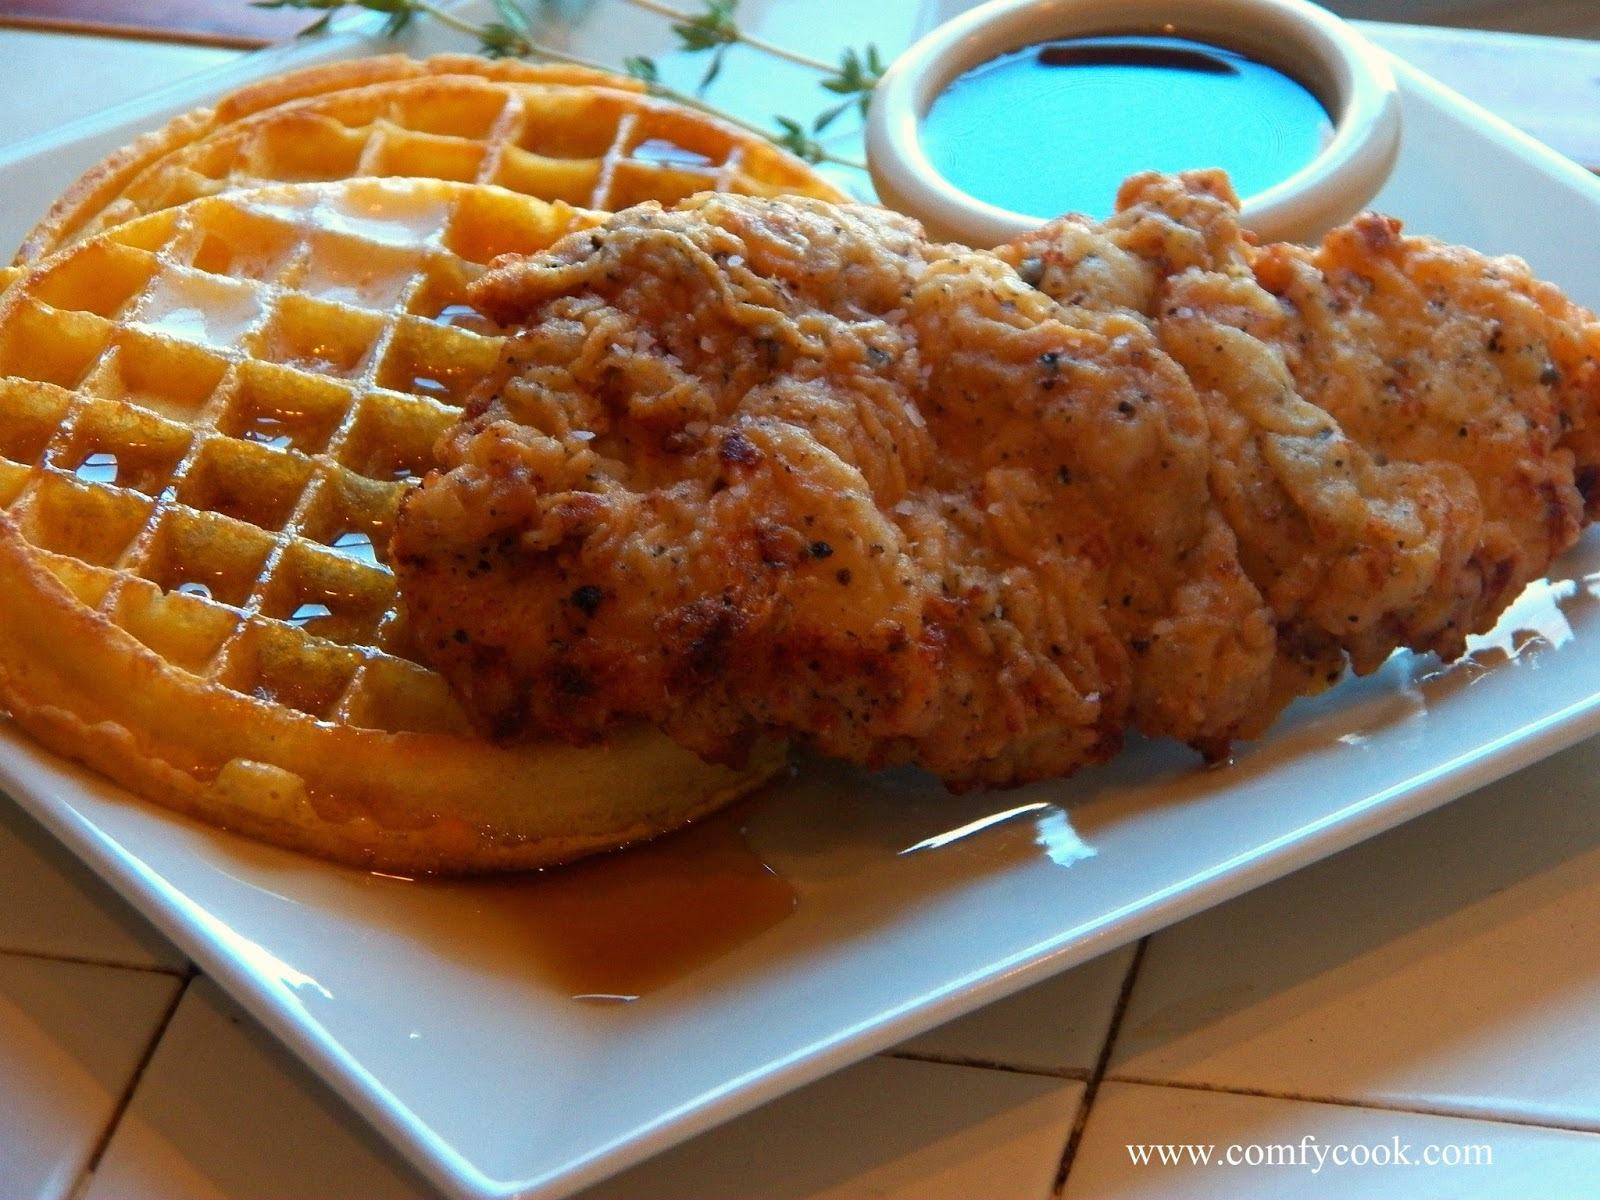 Fried Chicken And Waffles Fry chicken until golden brown